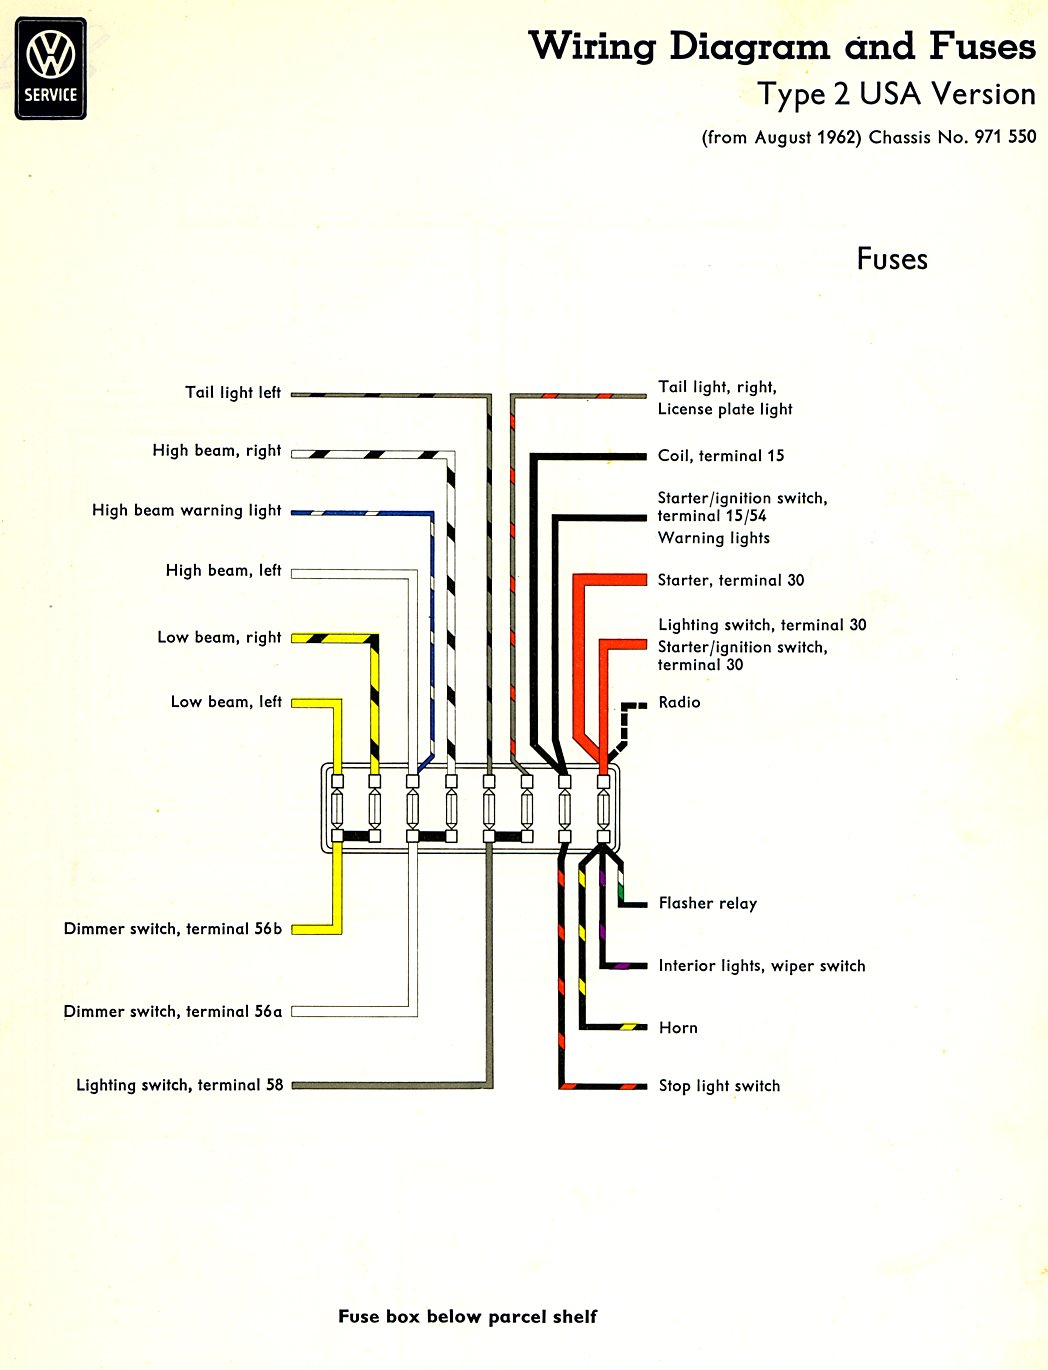 Type 2 Wiring Diagrams 81 Chevy Fuse Box Diagram